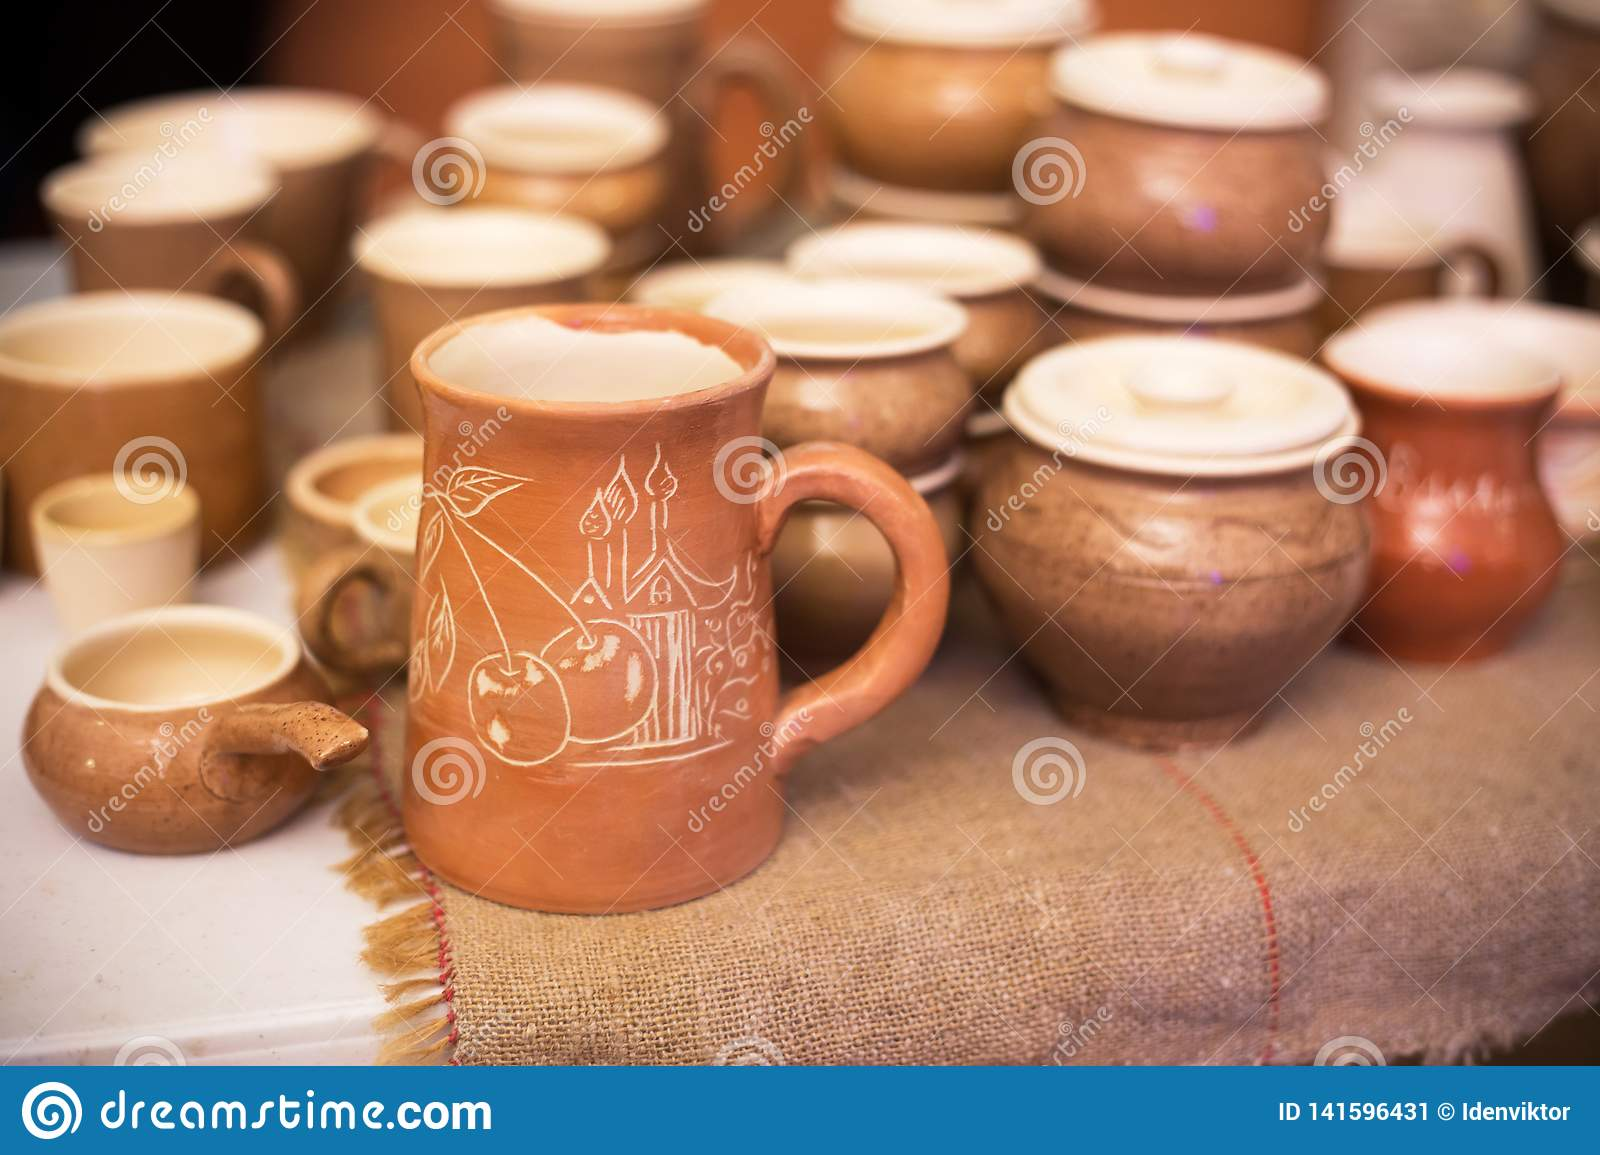 Handmade Pottery Ceramic Clay Pots Jug And Cups Stock Image Image Of Pitcher Pots 141596431